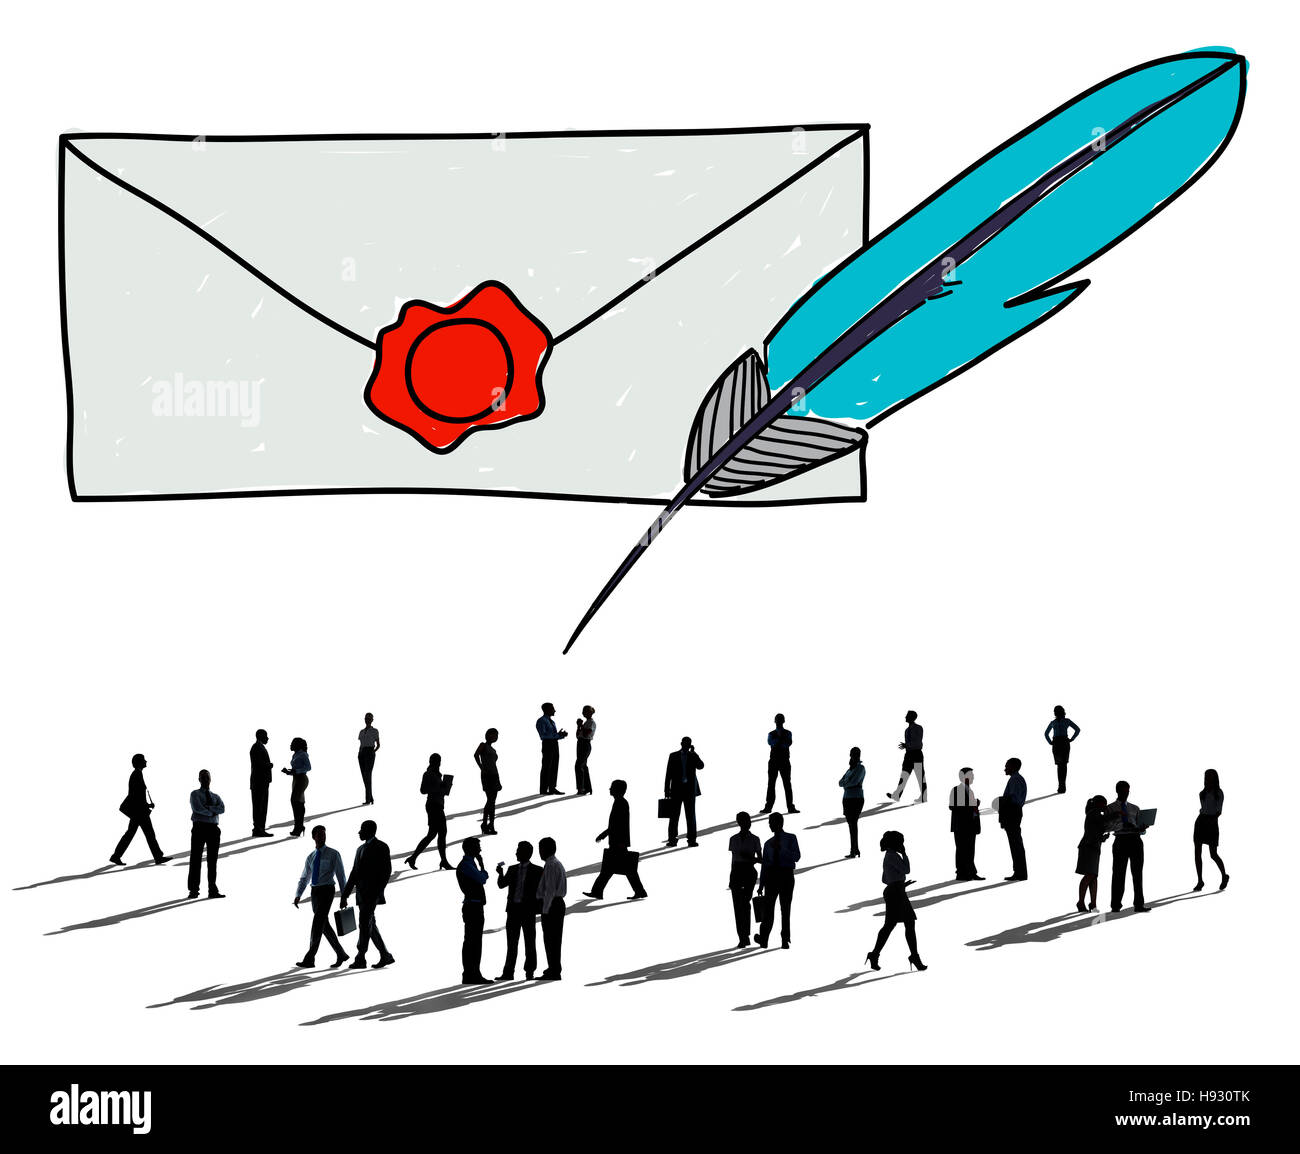 Mail Correspondence Communication Connection Concept - Stock Image